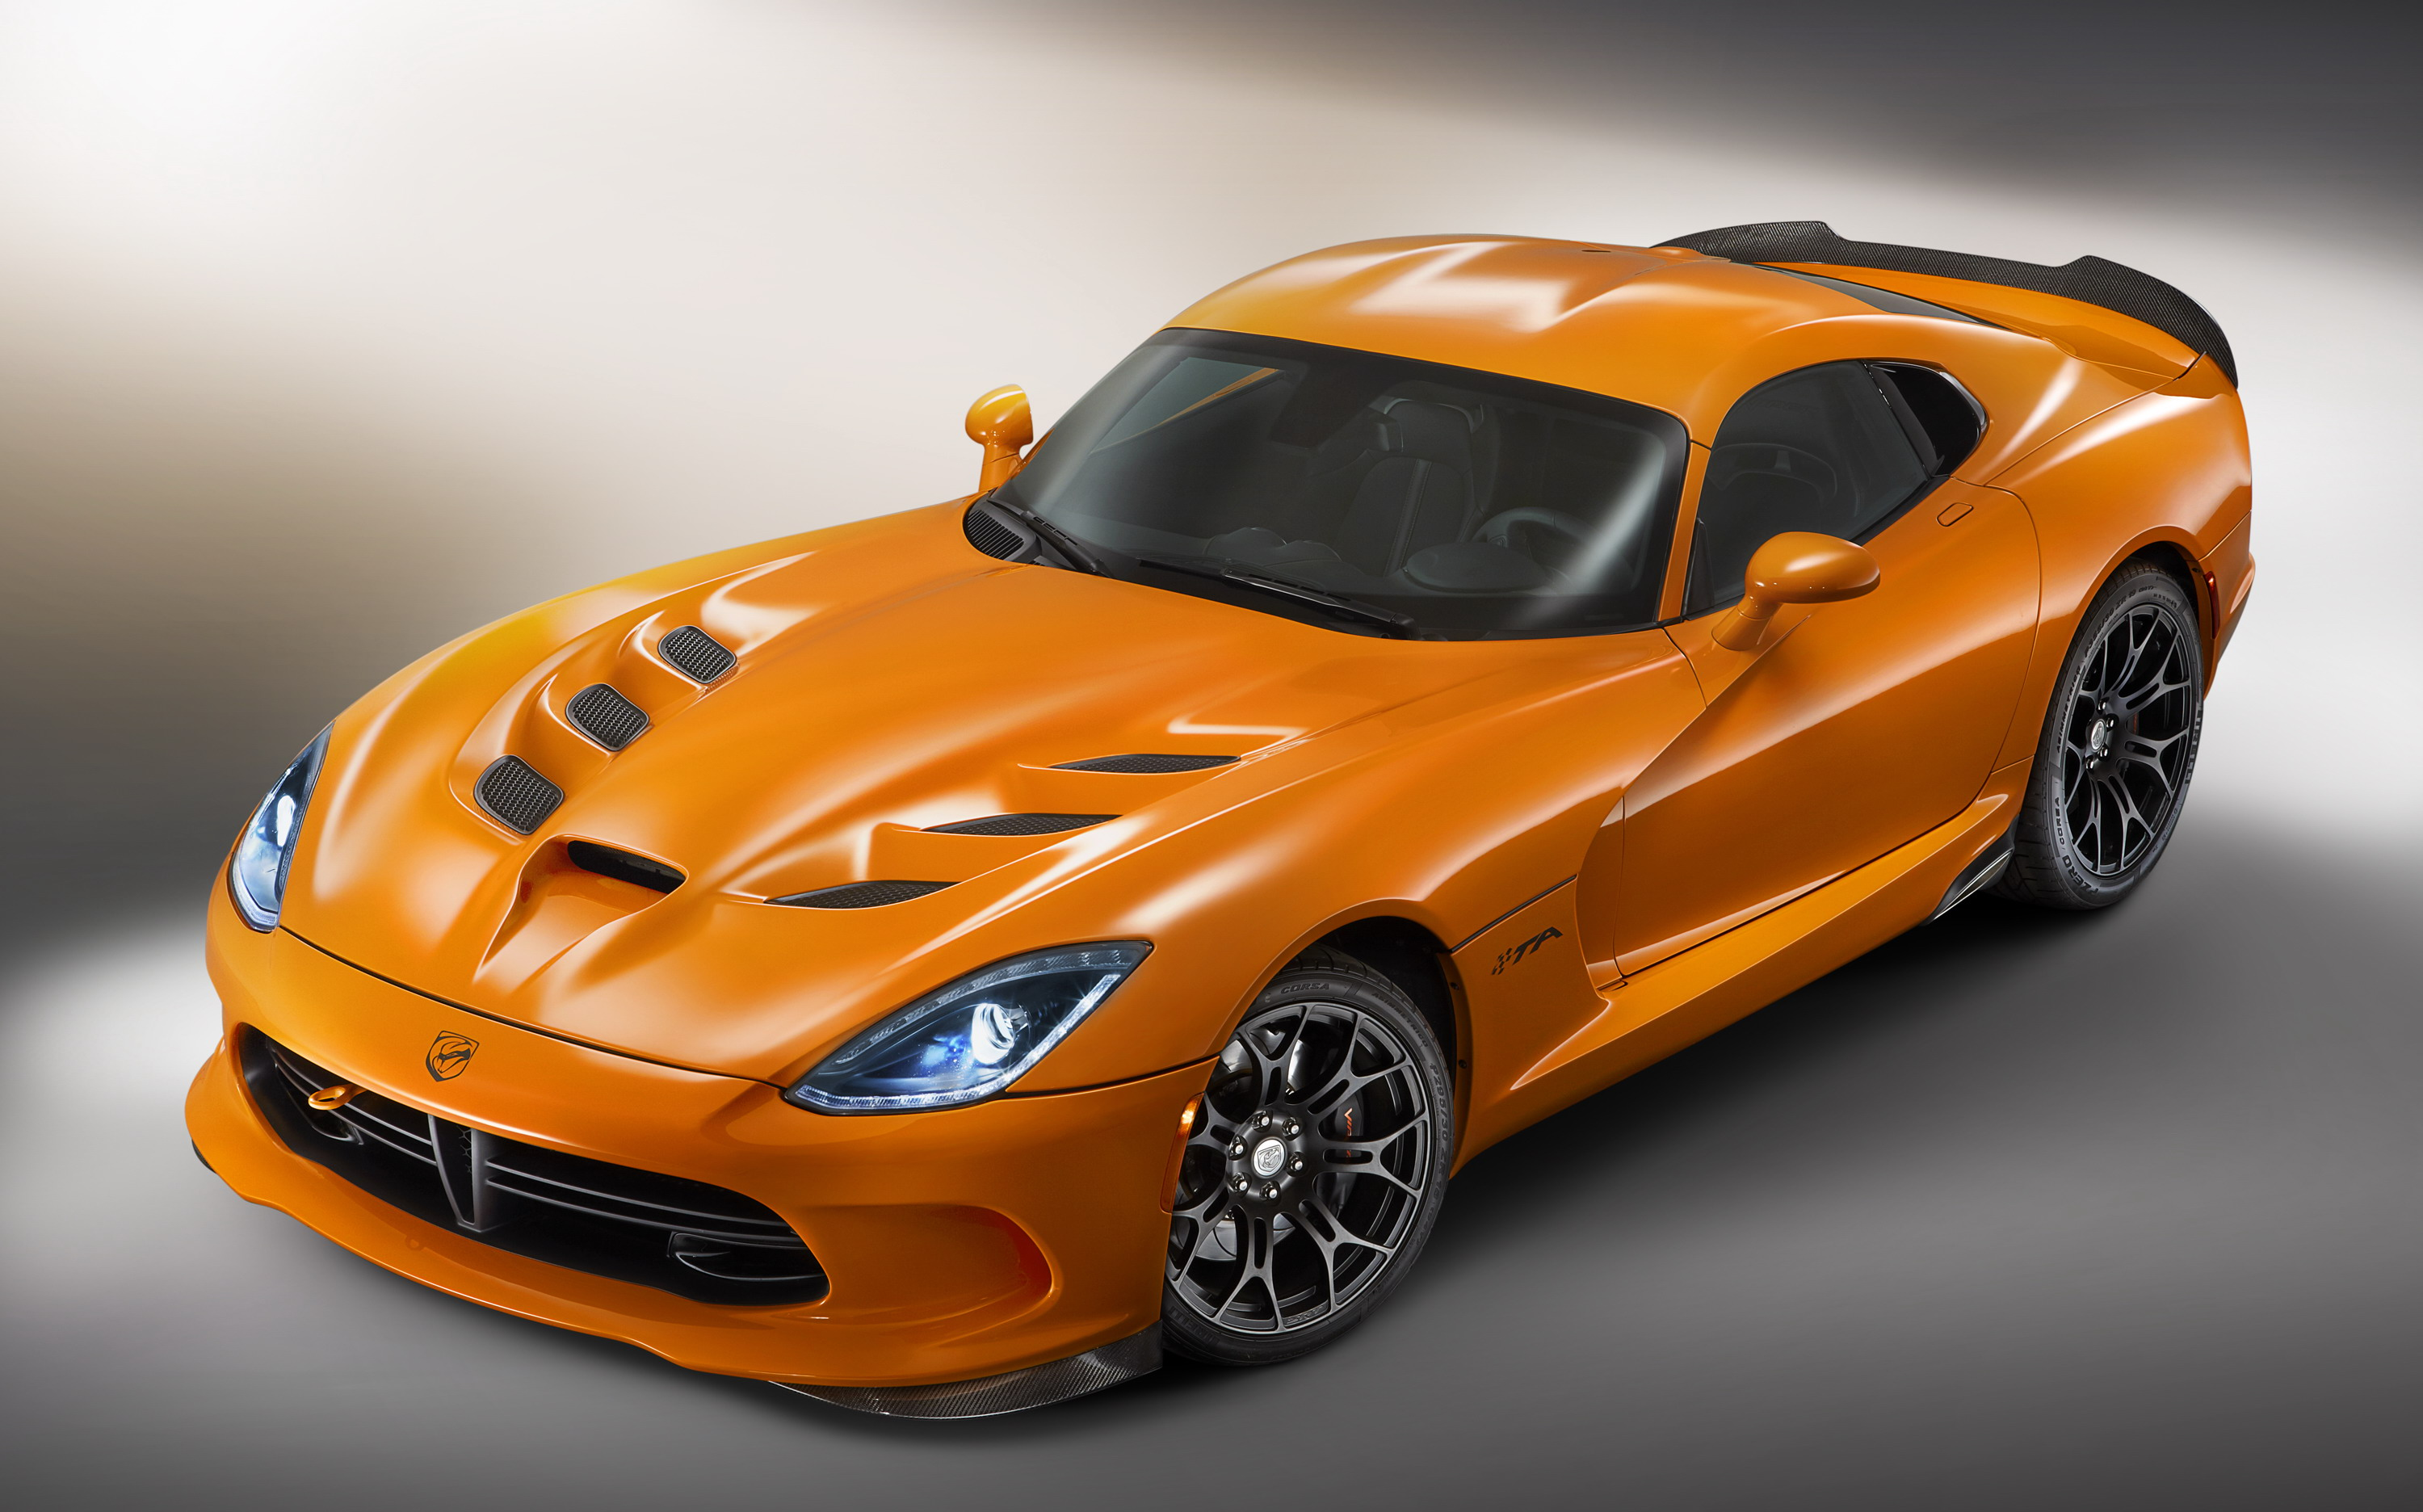 52 The Best Dodge Viper Concept 2020 Redesign